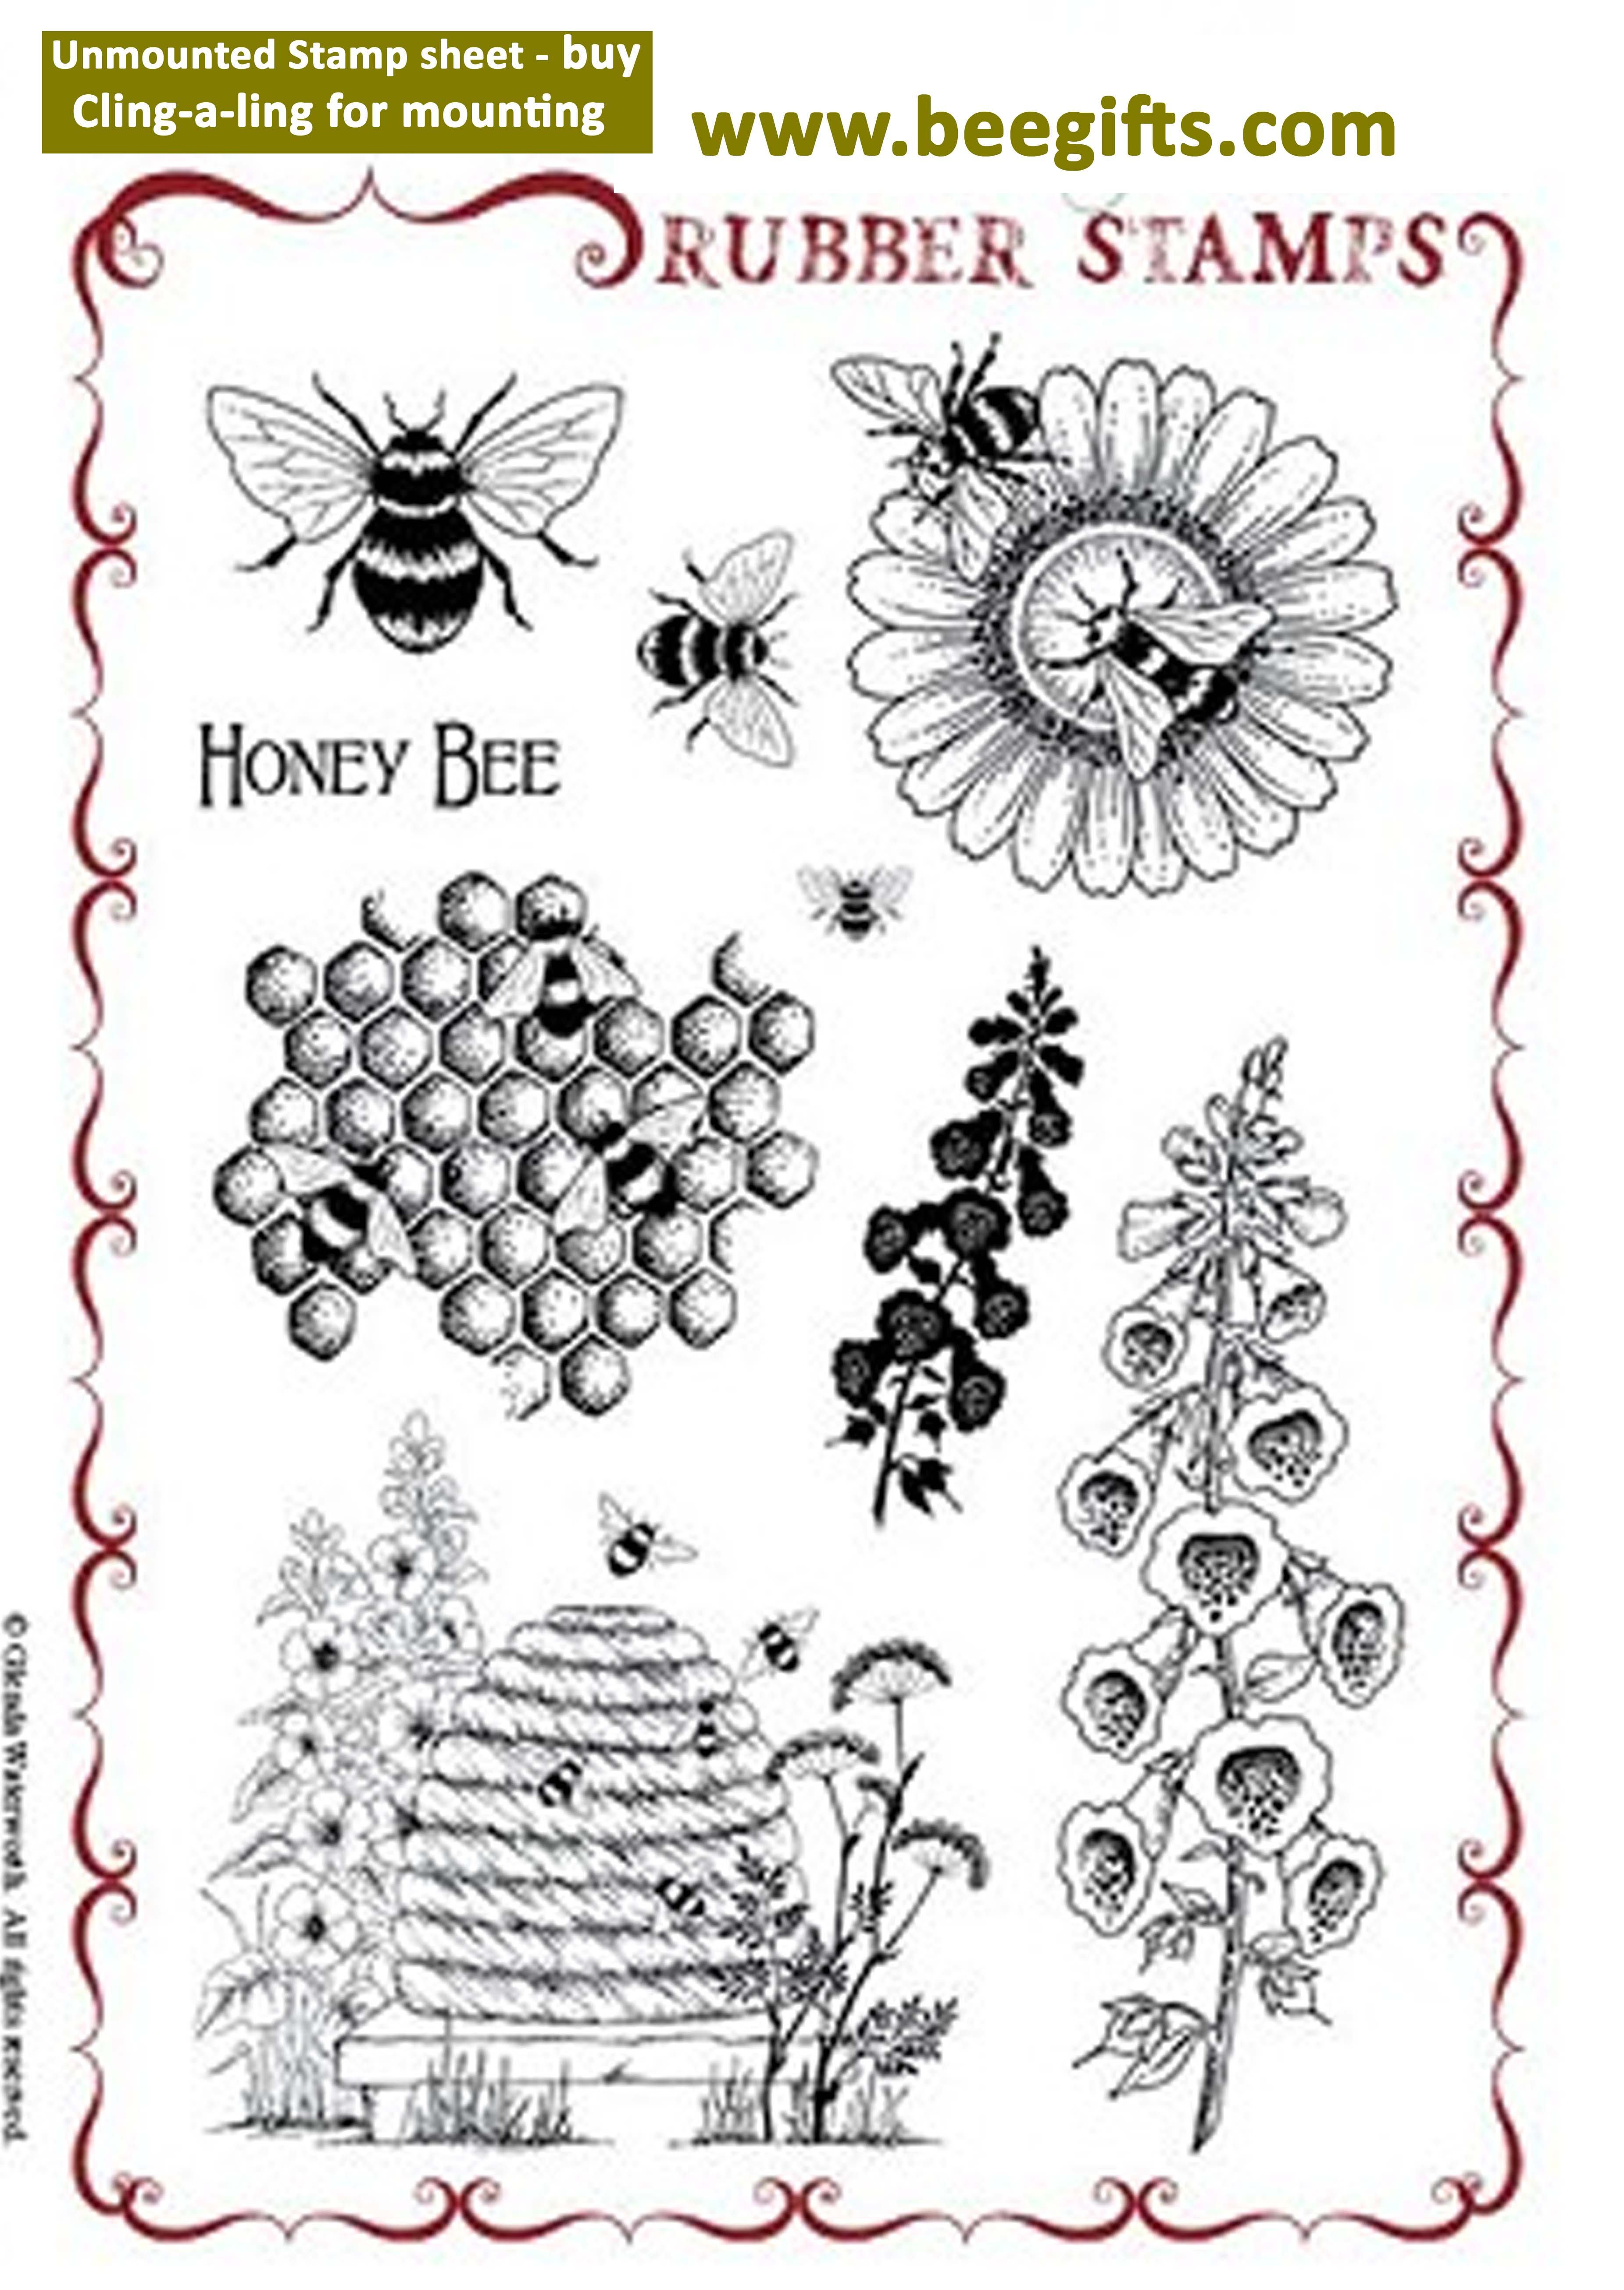 Honey Bee Rubber stamp sheet - unmounted copy